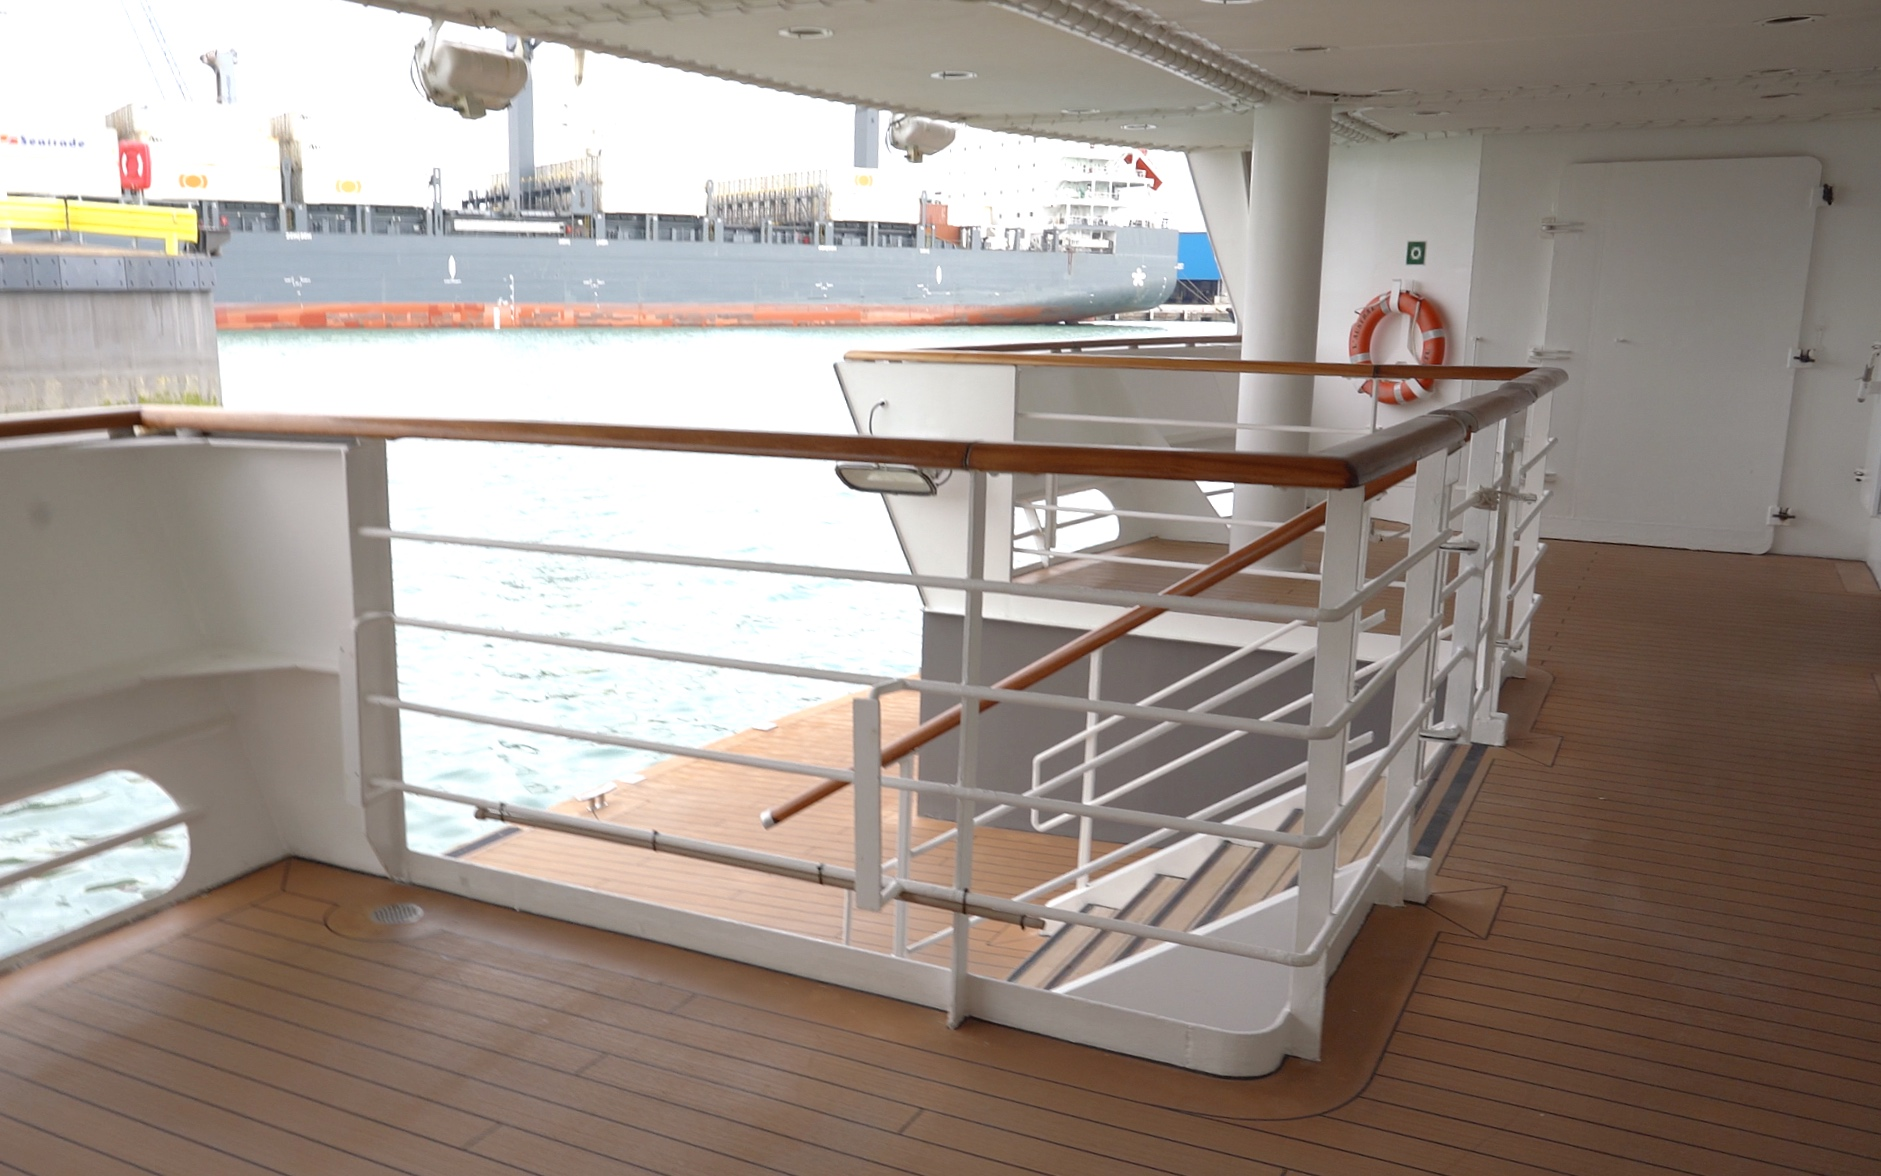 Steps down to the marina deck.